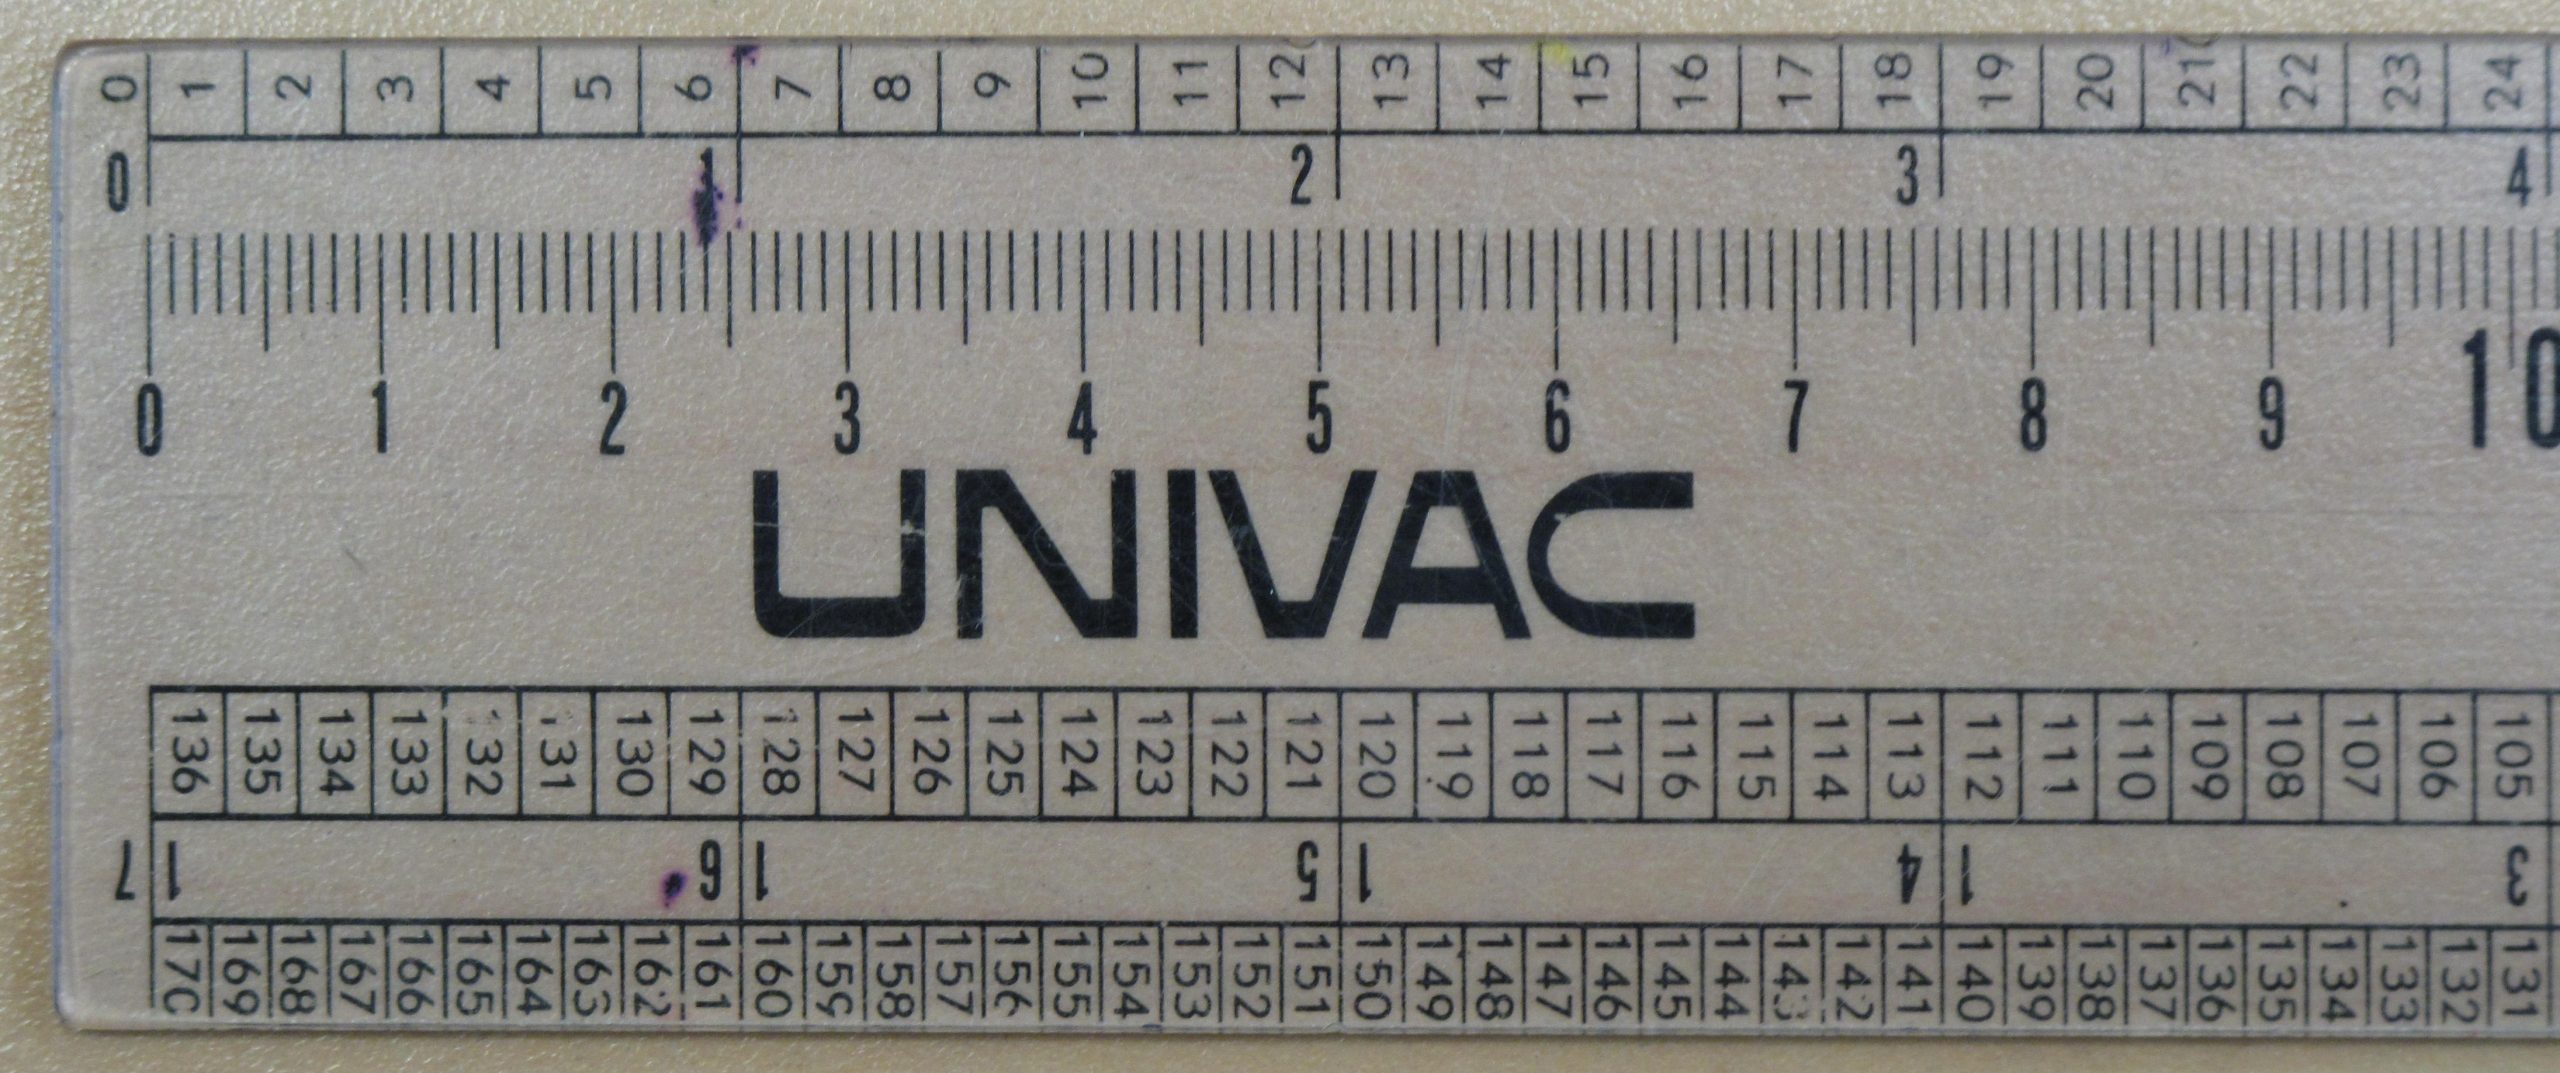 File:ruler 4Scales Details - Wikimedia Commons